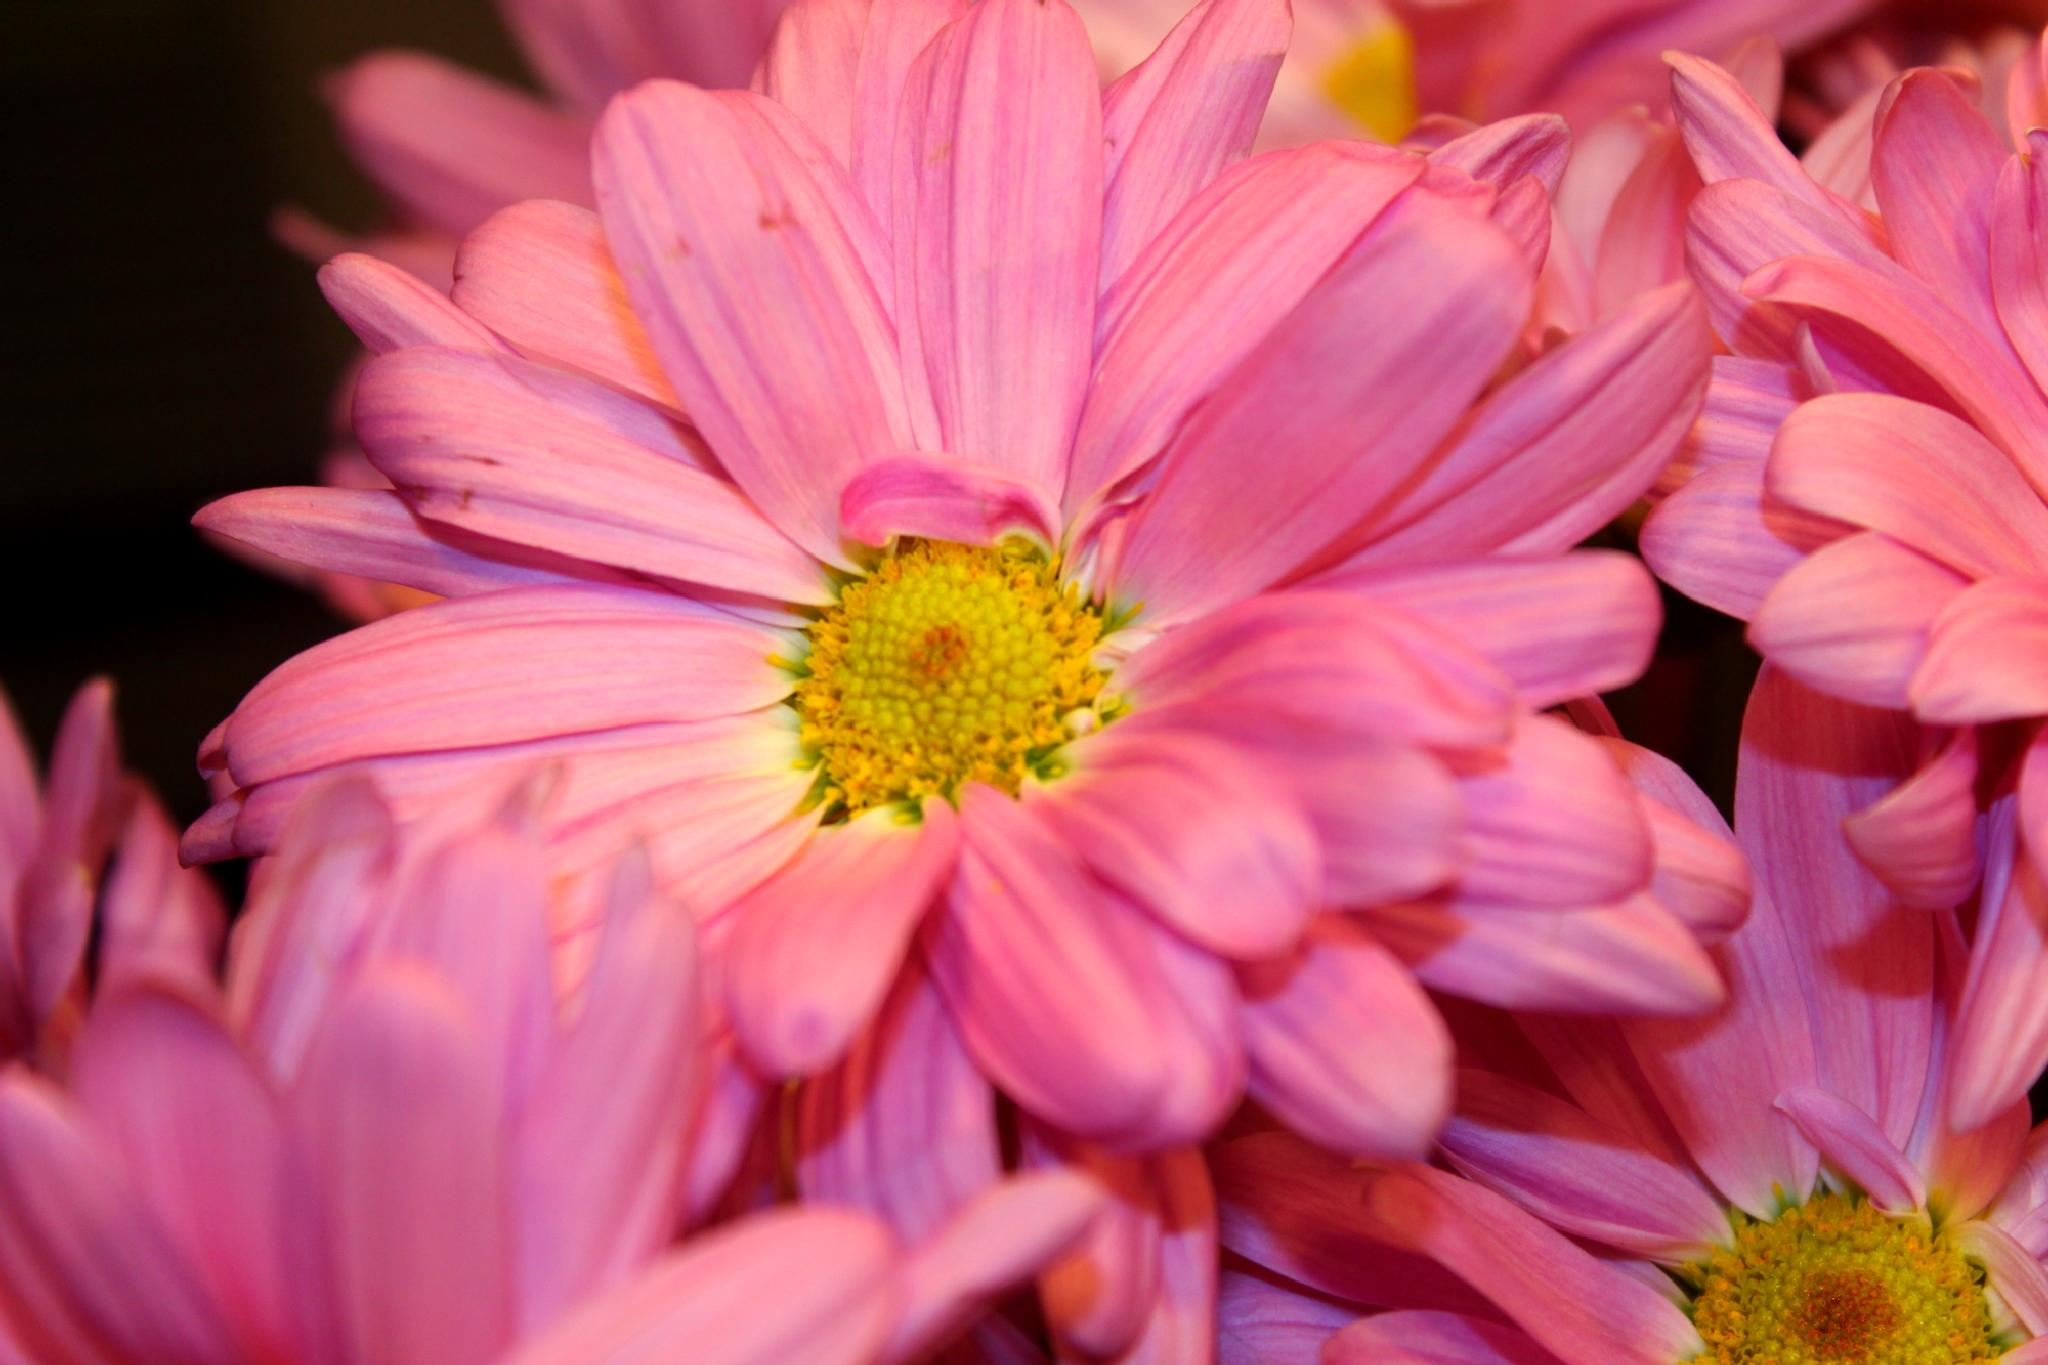 Pink Daisy by christie.henderson.5